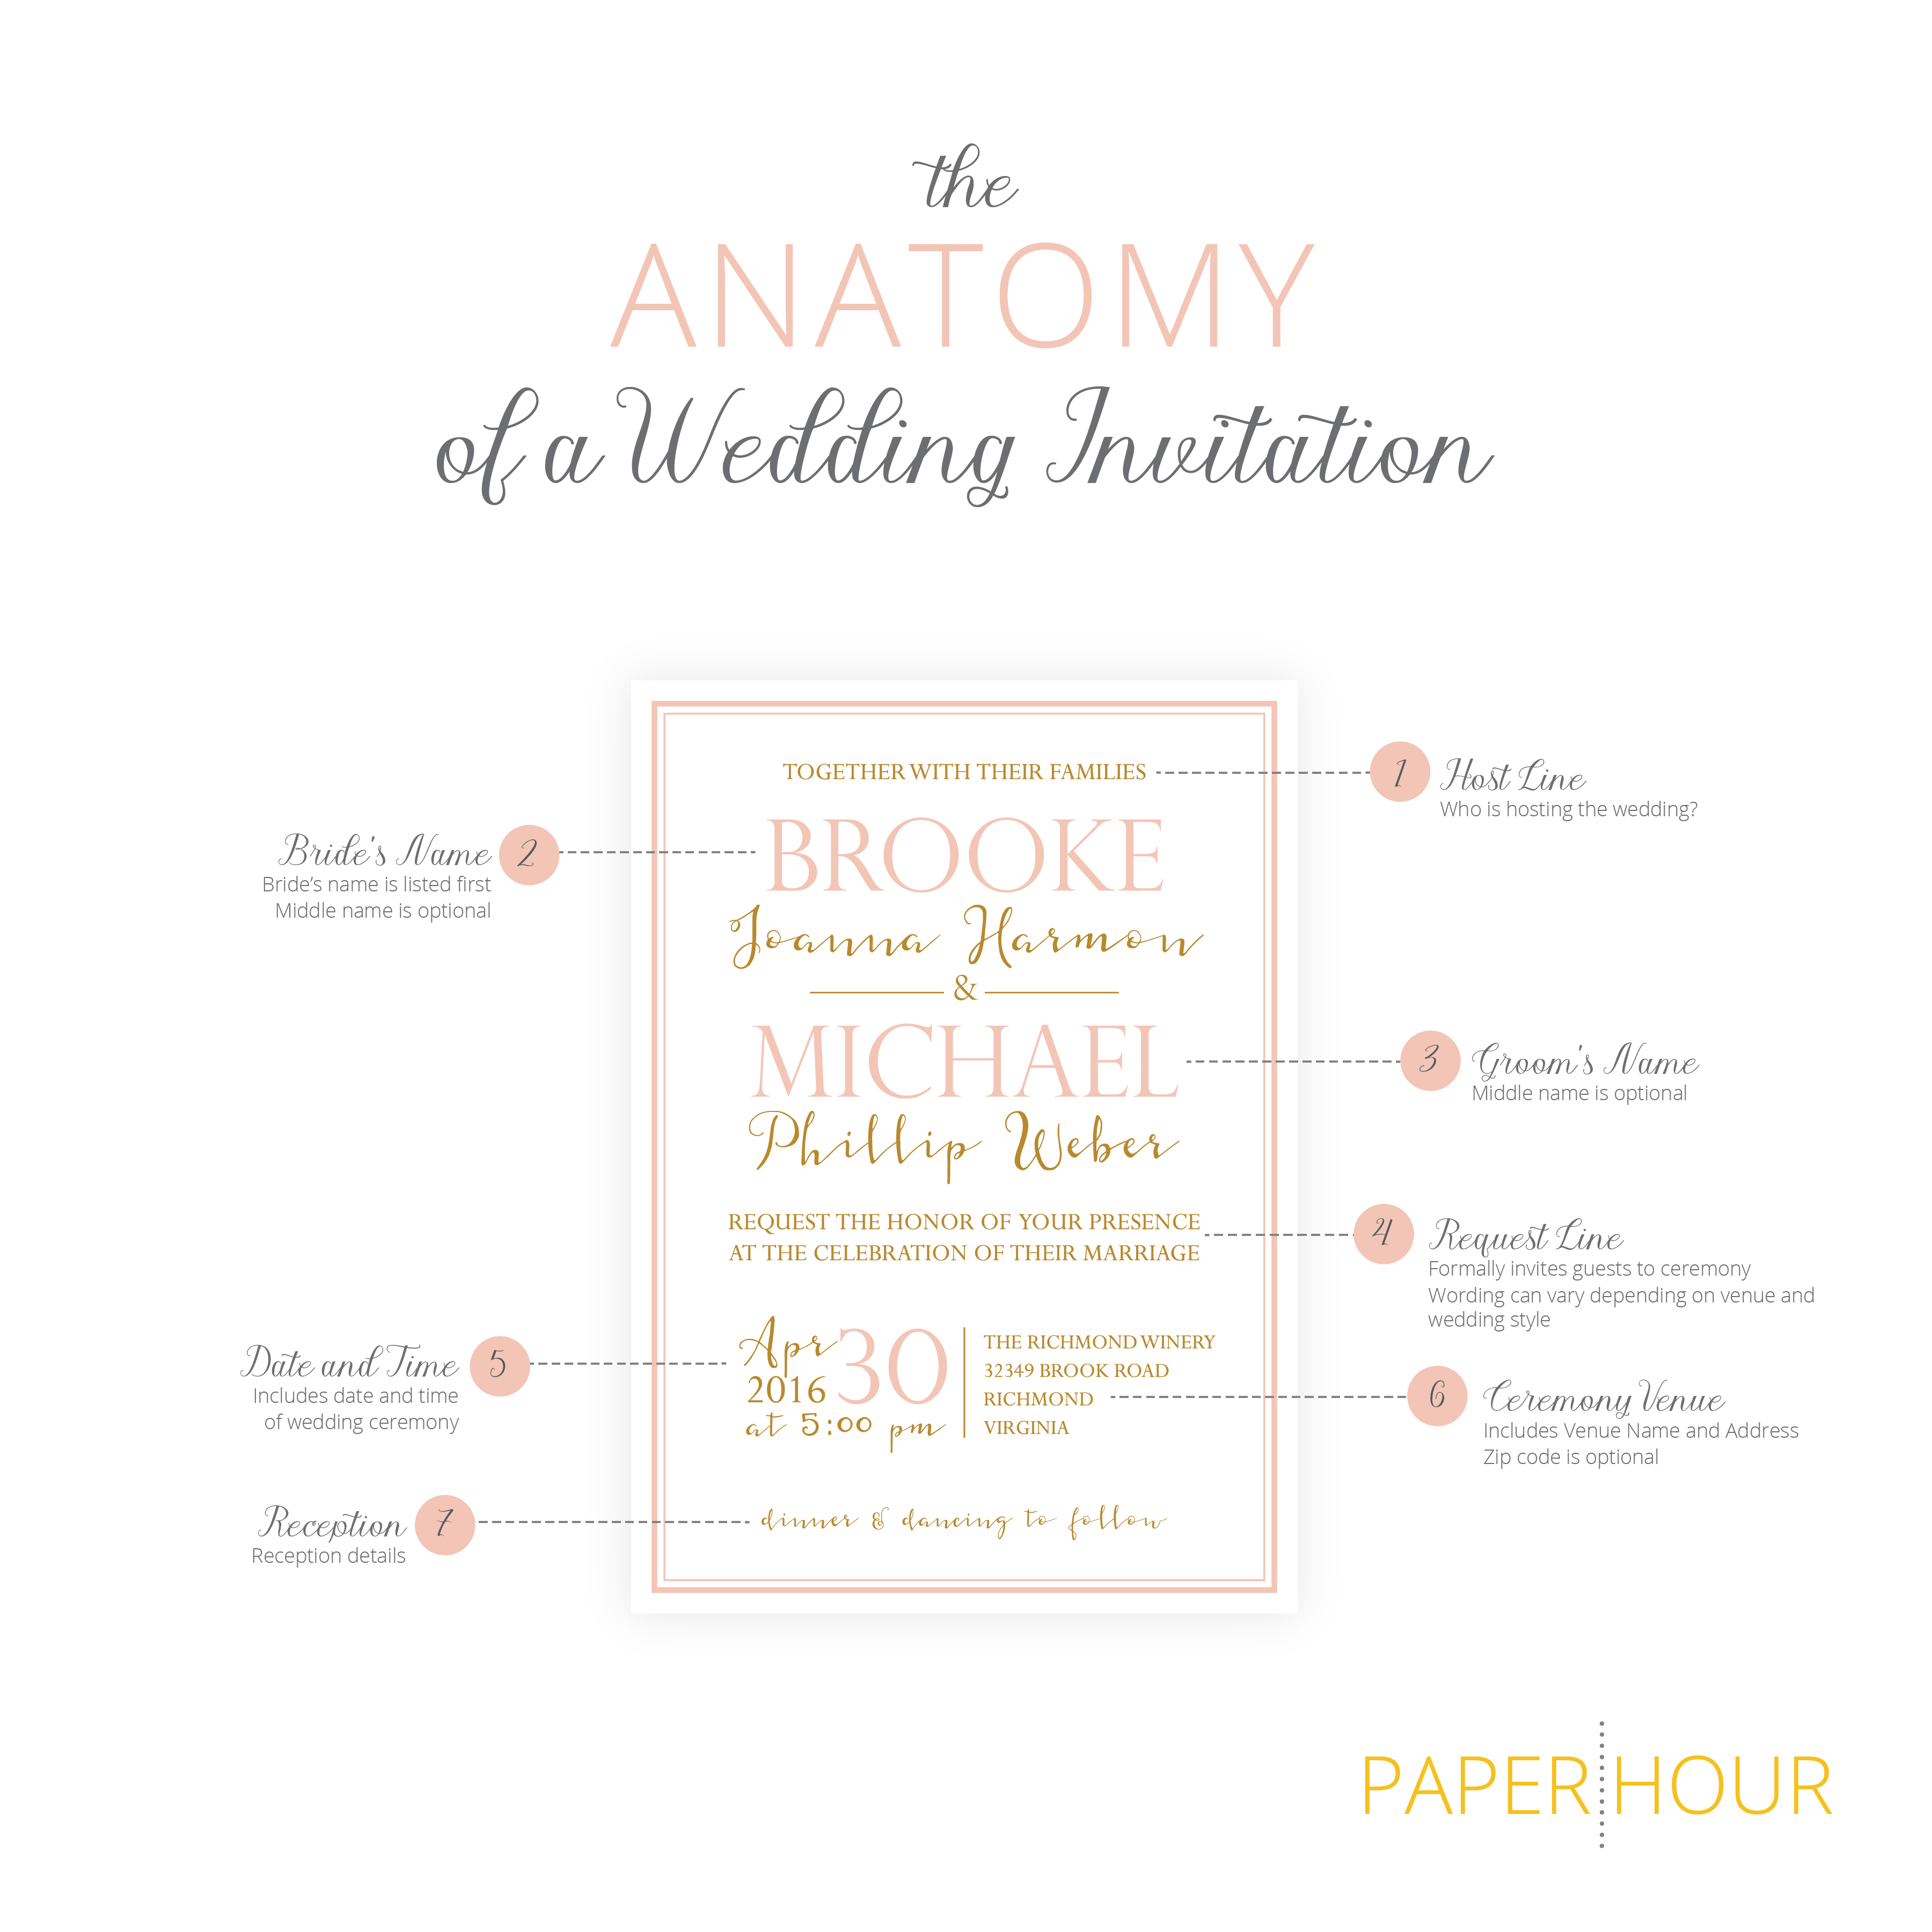 The Anatomy Of A Wedding Invitation Paperhourcrafts